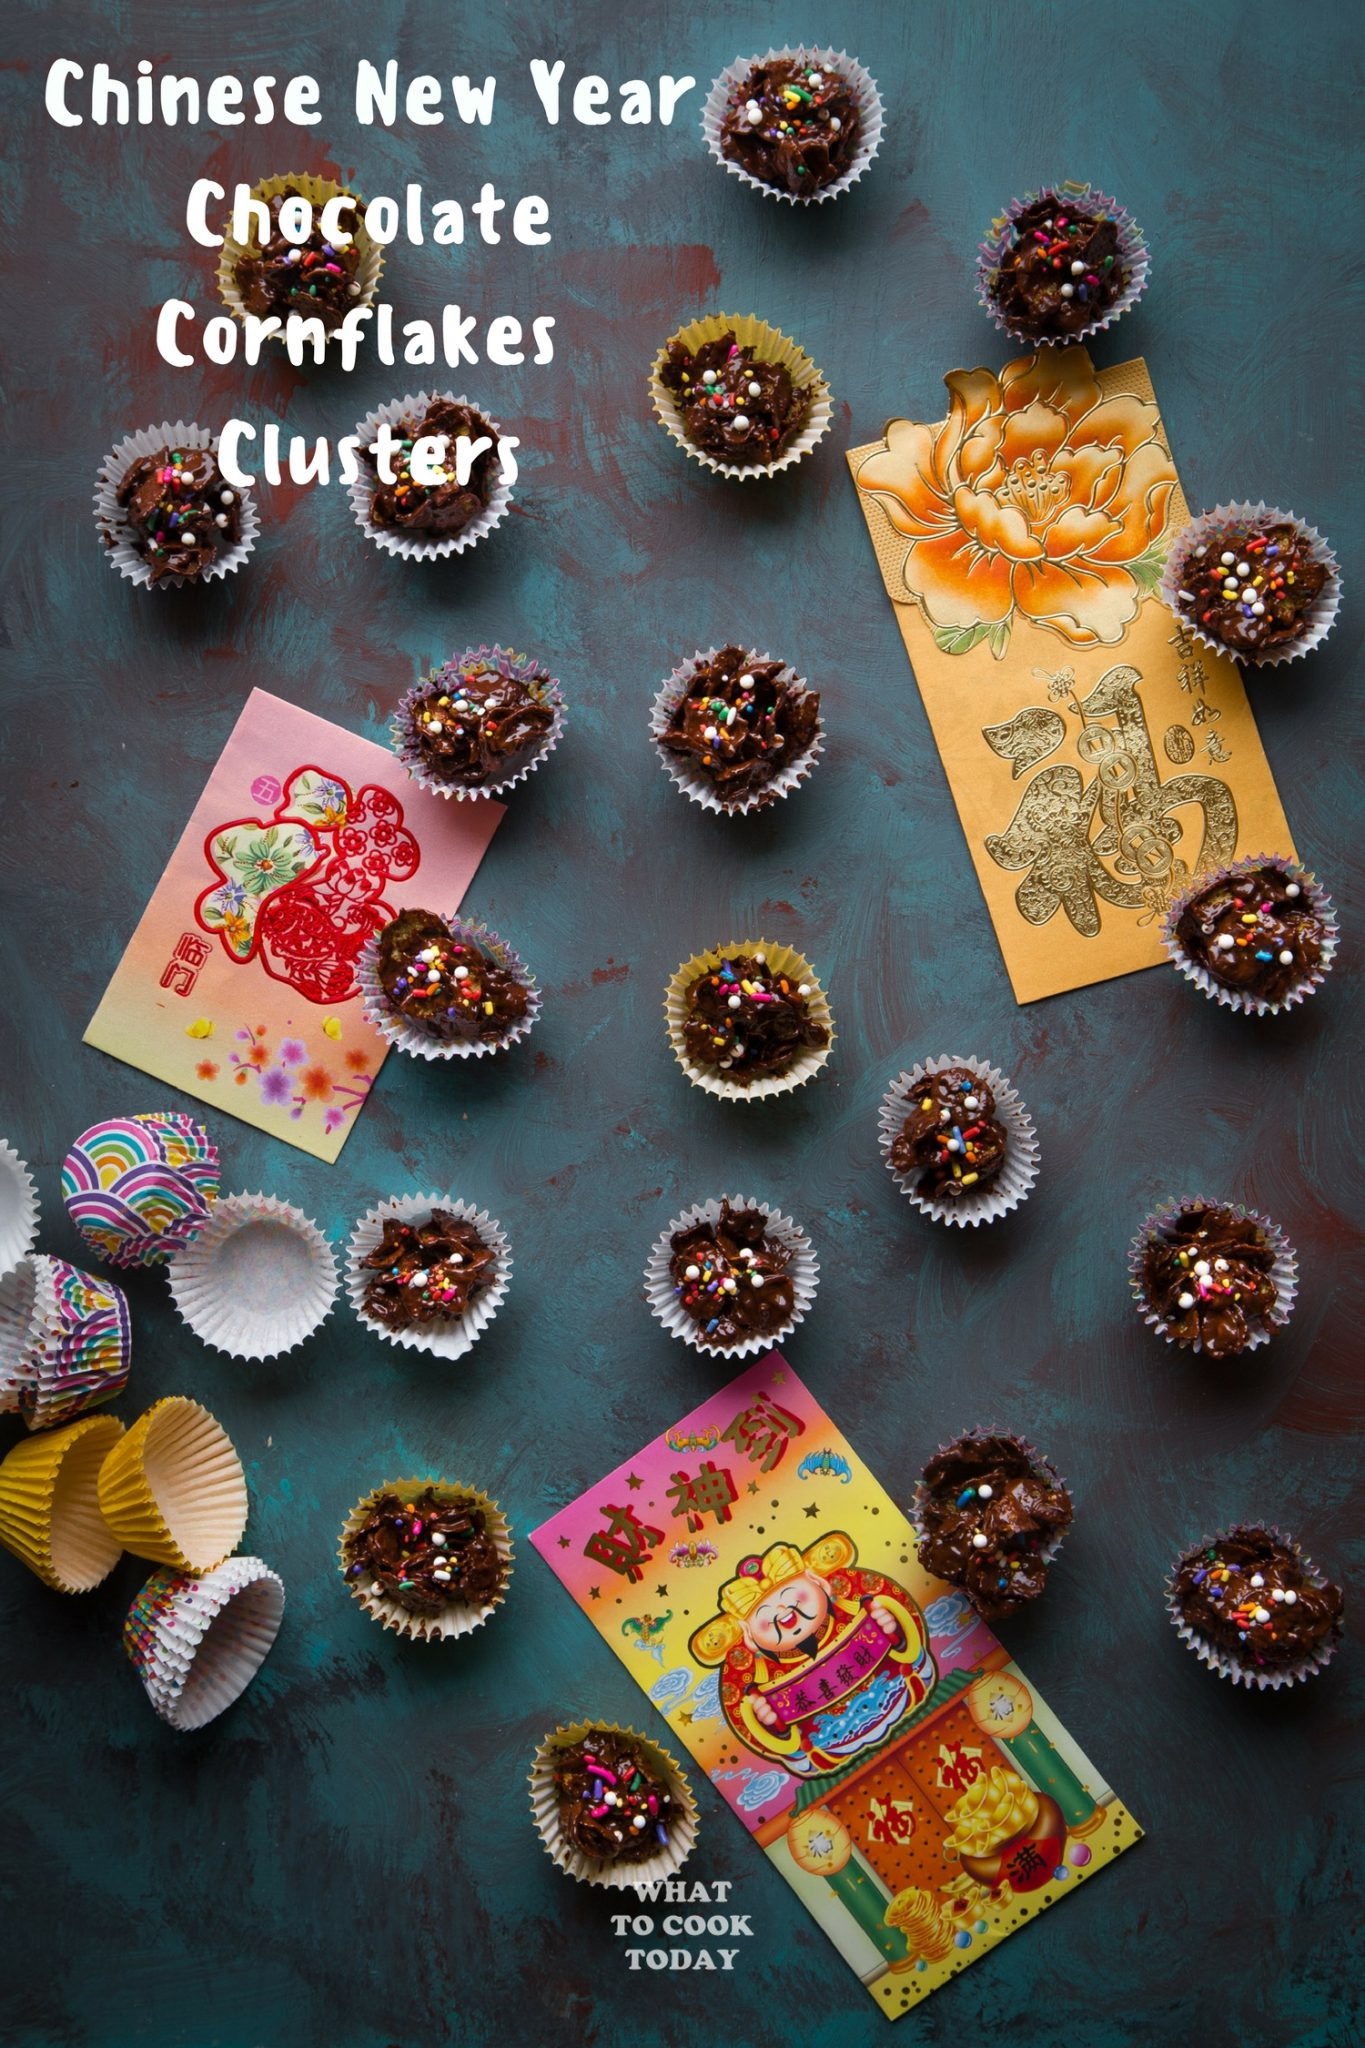 Chinese New Year Chocolate Cornflakes Clusters (No Bake) #CNY #sweets #cereal #chocolate